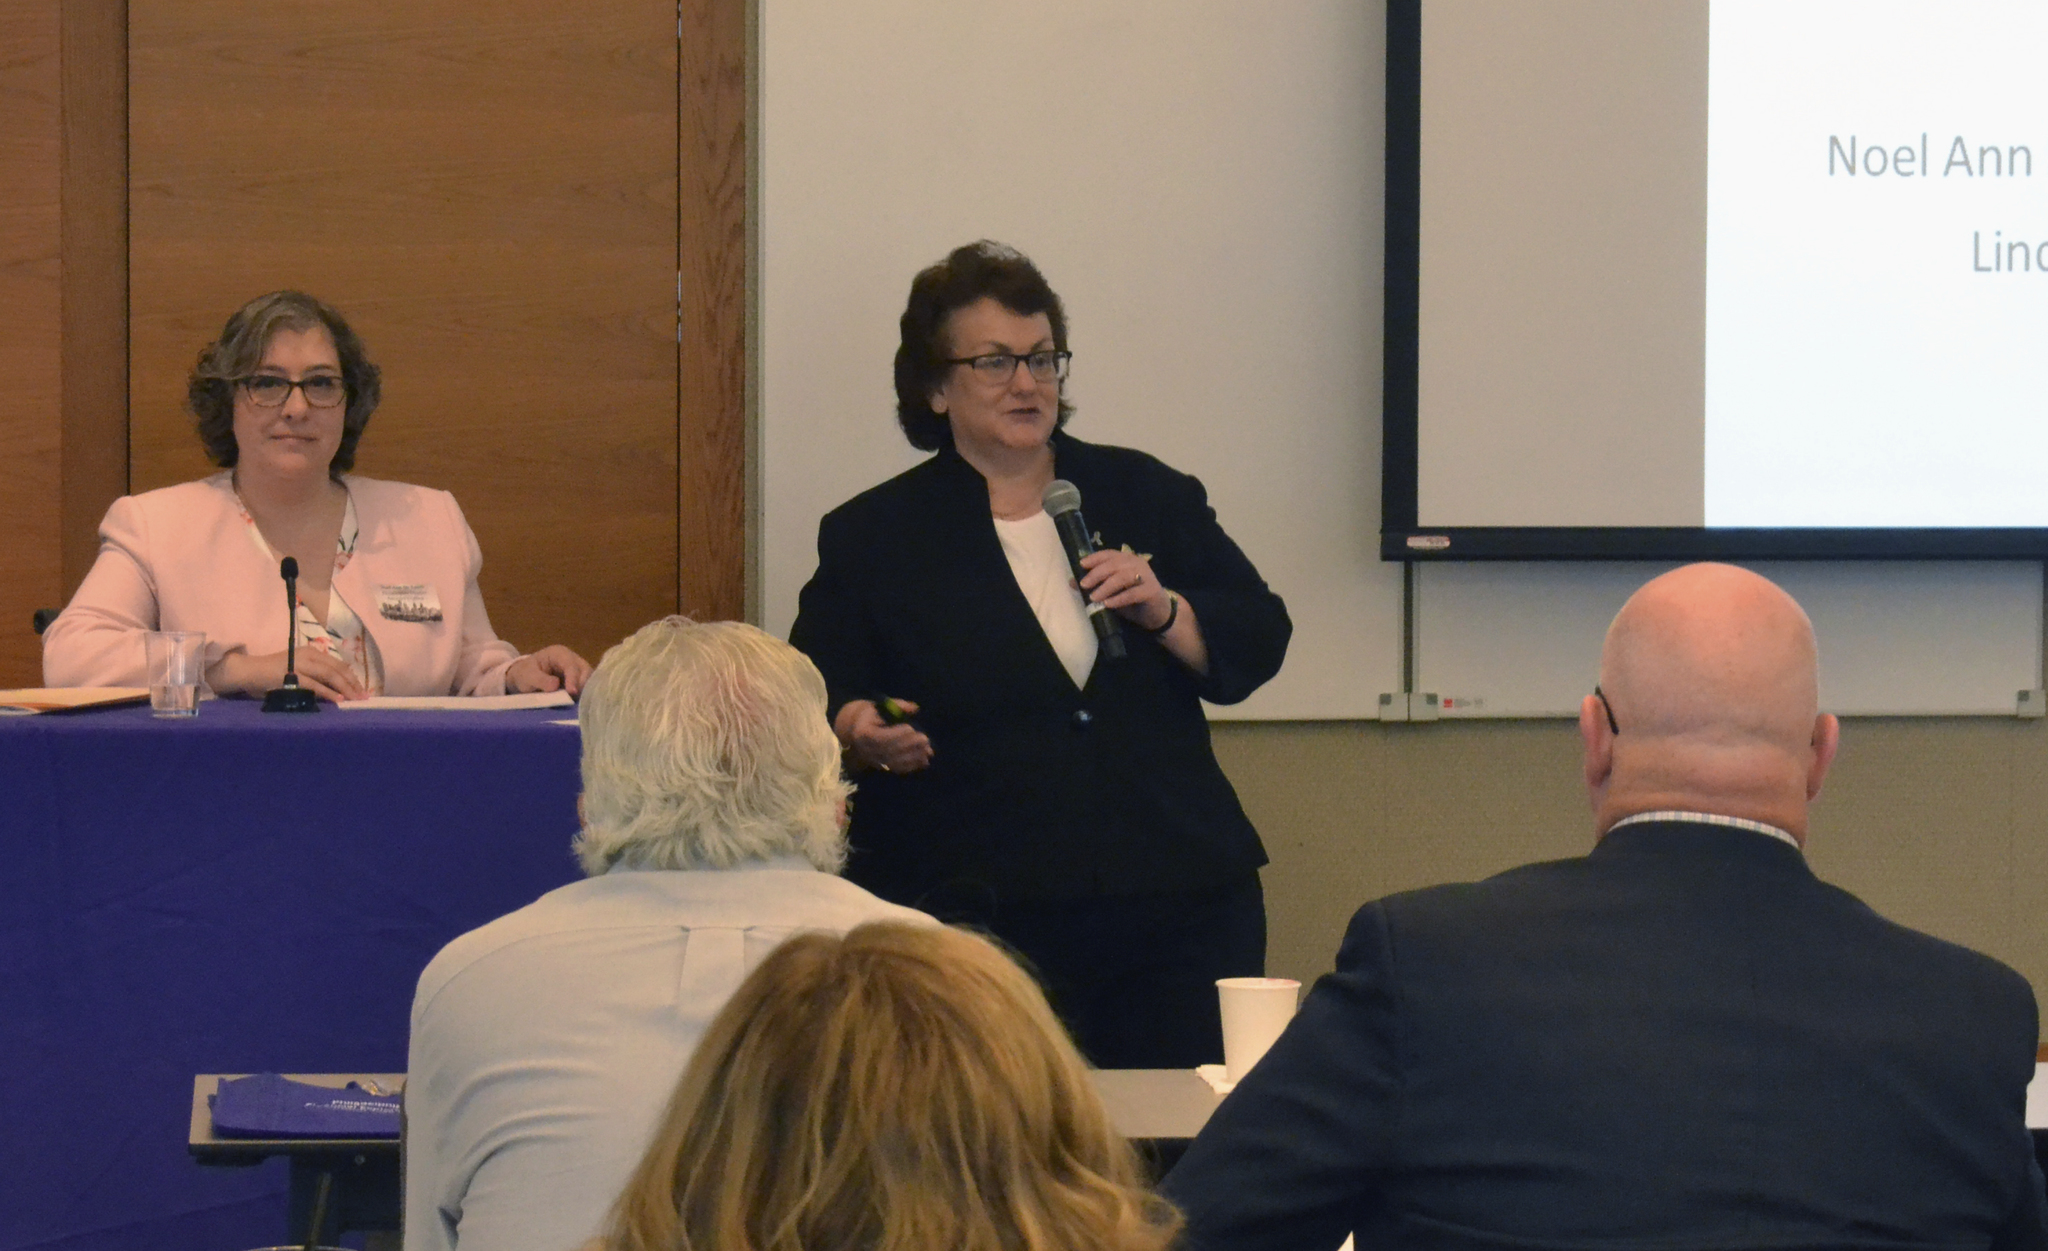 Assistant D.A. Noel Ann DeSantis, left, and Linda Mill of Ally Bank spoke on elder financial exploitation at the Federal Reserve Bank of Philadelphia on Friday, June 22, 2018. (Credit: Terrence Casey/Penn Memory Center)